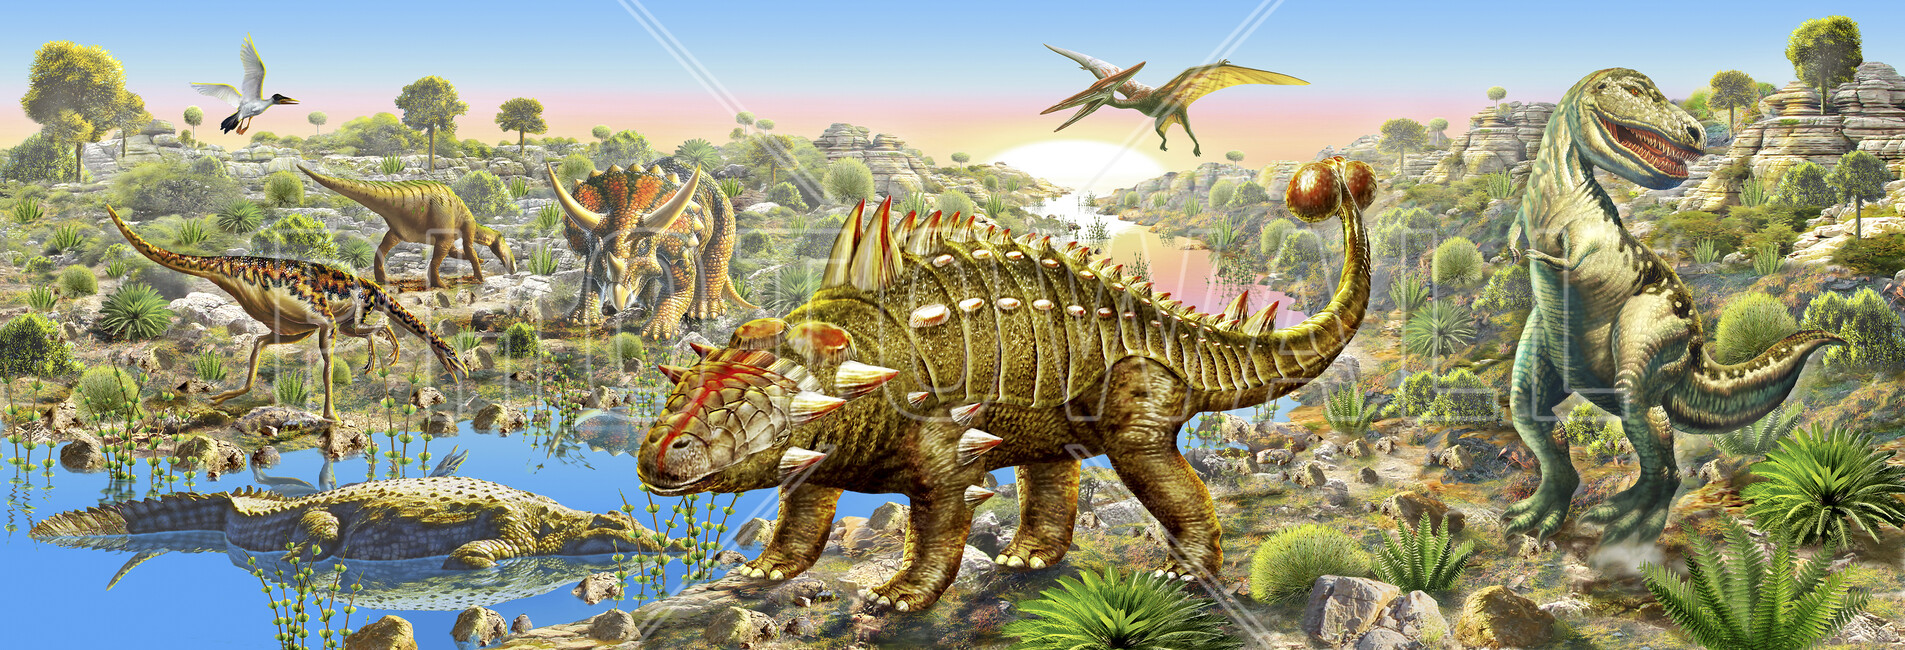 Dinosaur valley panorama wall mural photo wallpaper photowall dinosaur valley panorama amipublicfo Image collections